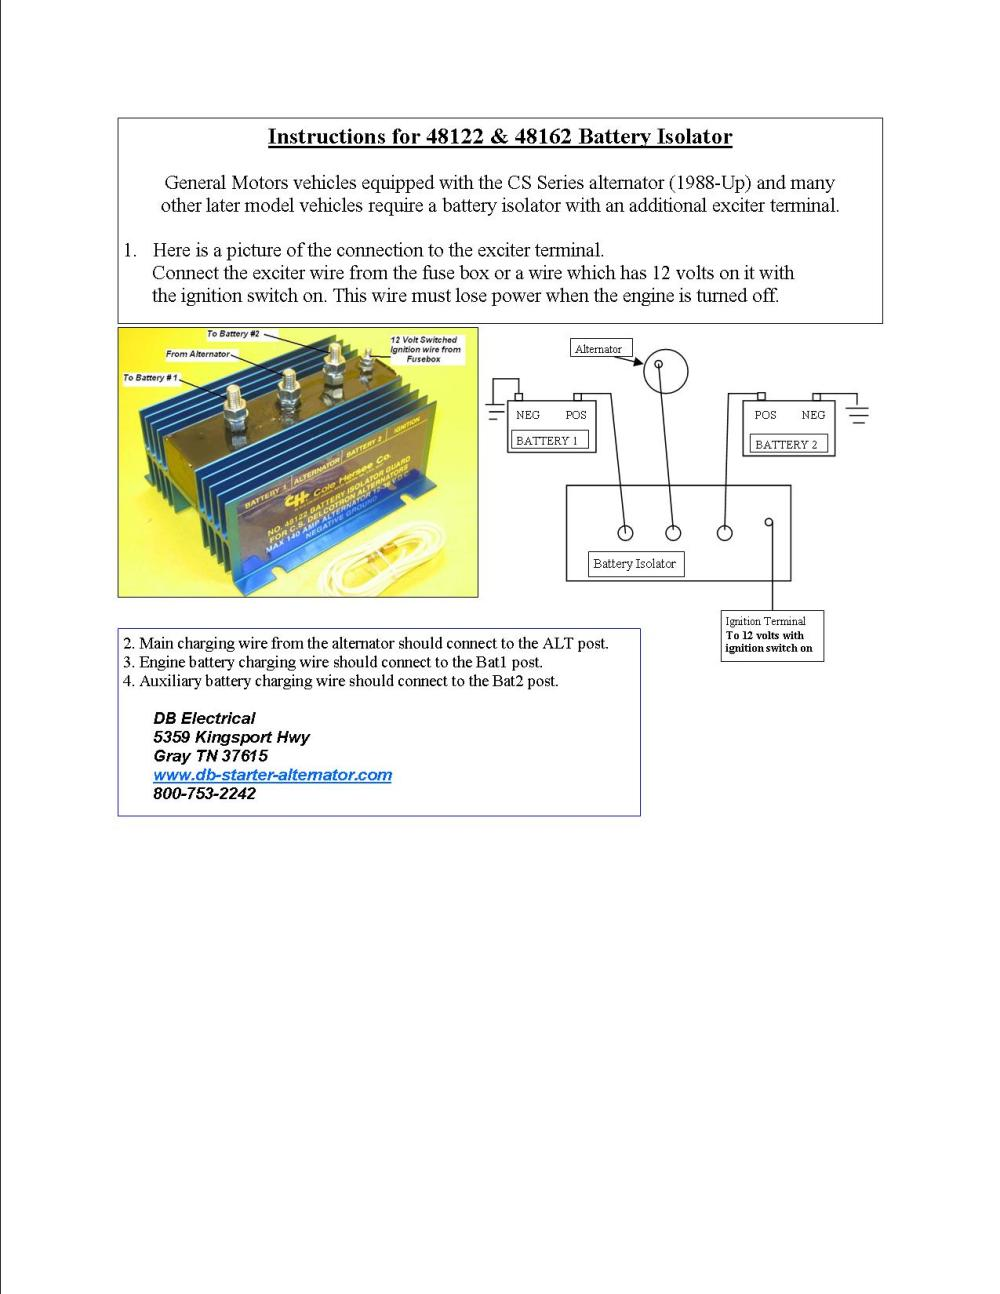 medium resolution of ib 750 battery isolator wiring diagram wiring librarycole hersee battery isolator wiring diagram free vehicle wiring